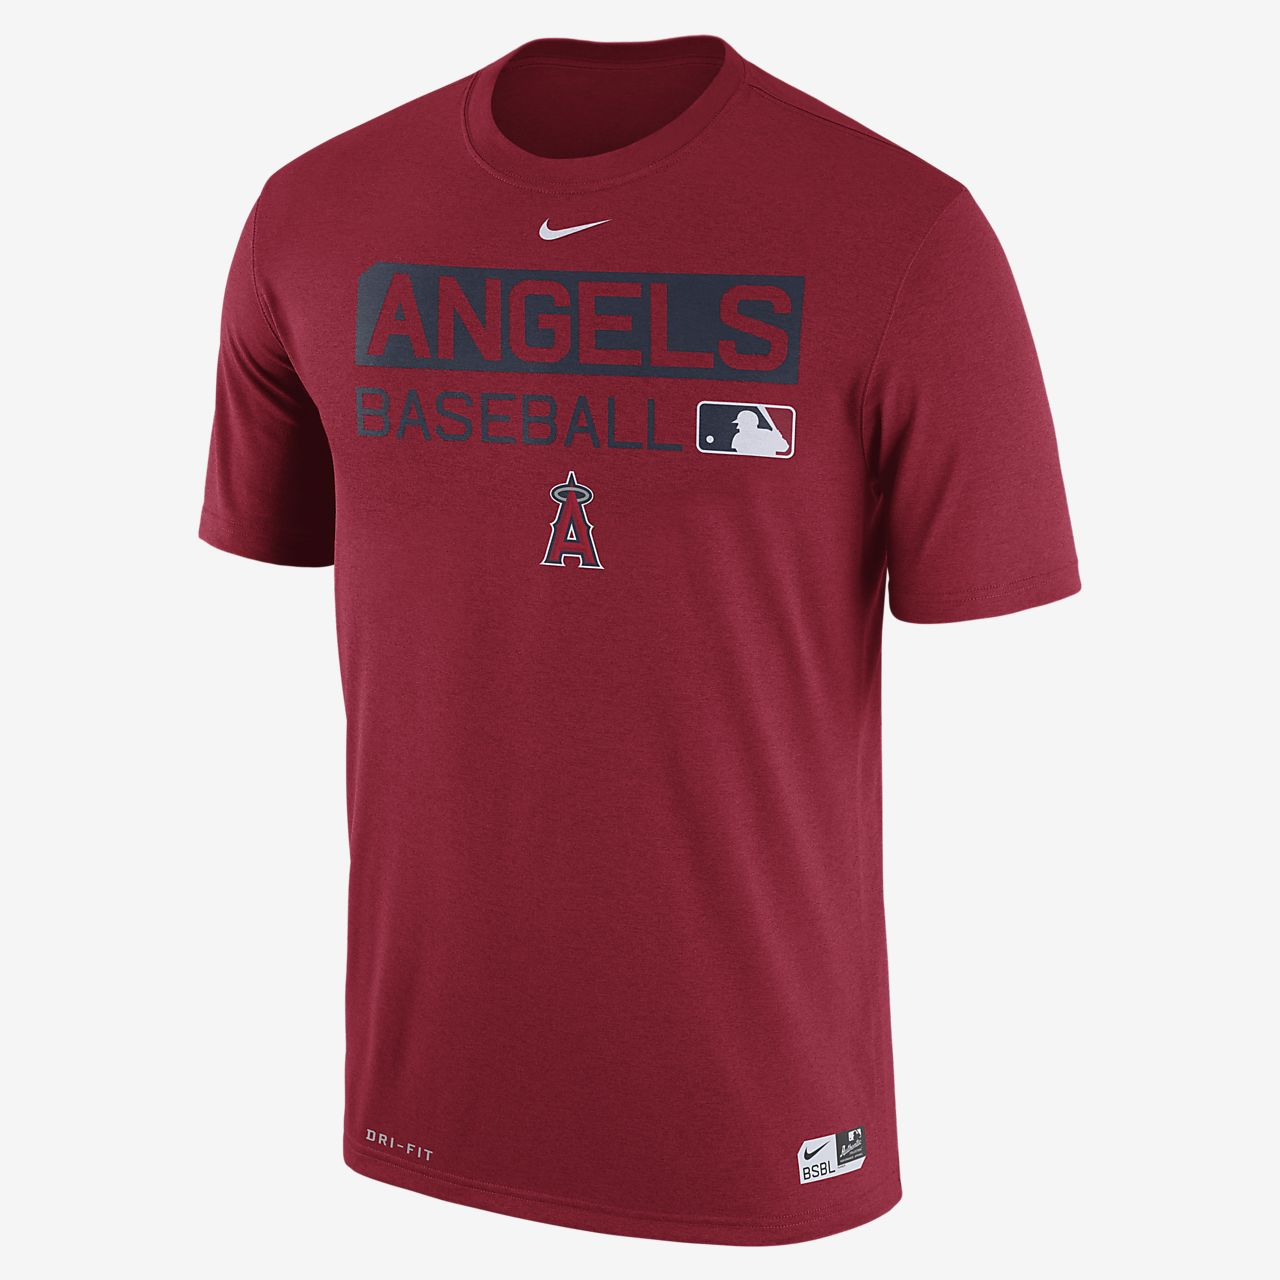 Nike Legend Team Issue (MLB Angels) Men's T-Shirts Red